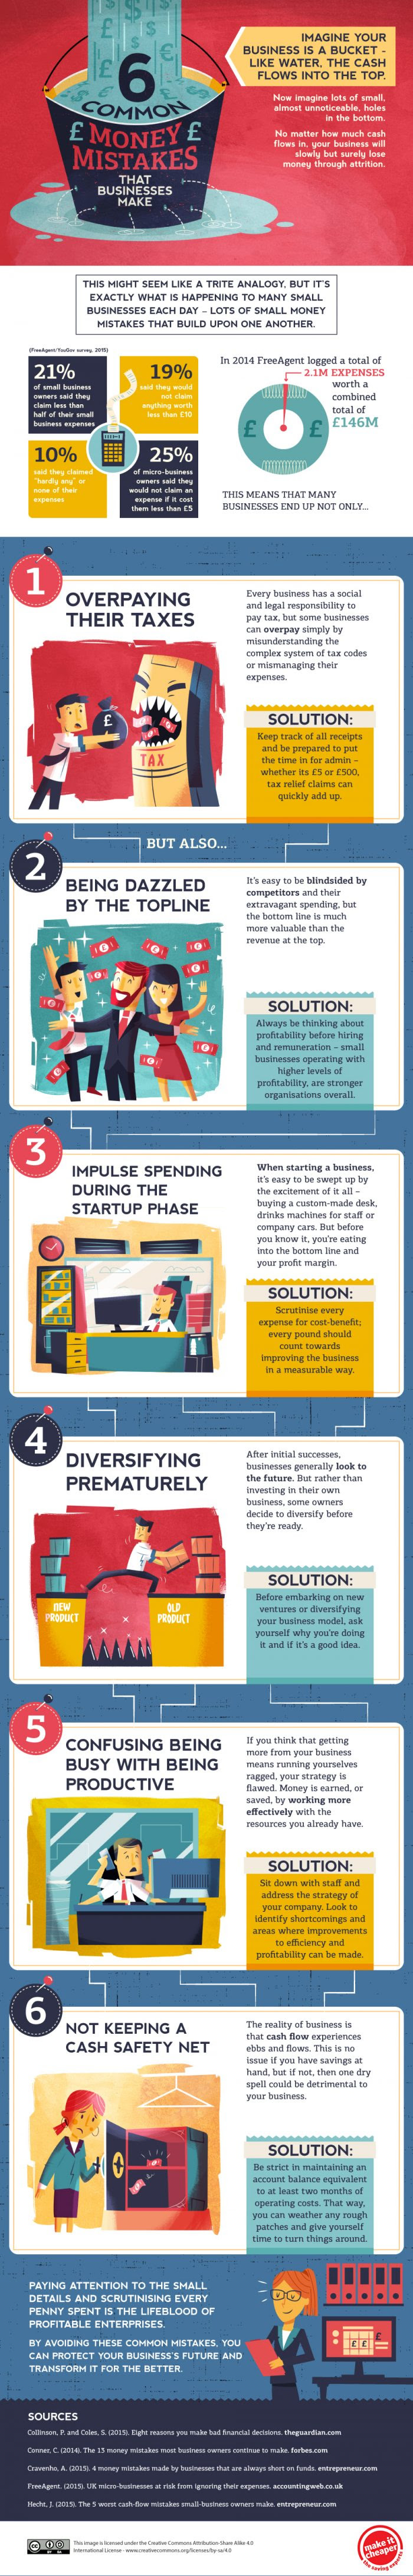 6 Common Money Mistakes That Businesses Make